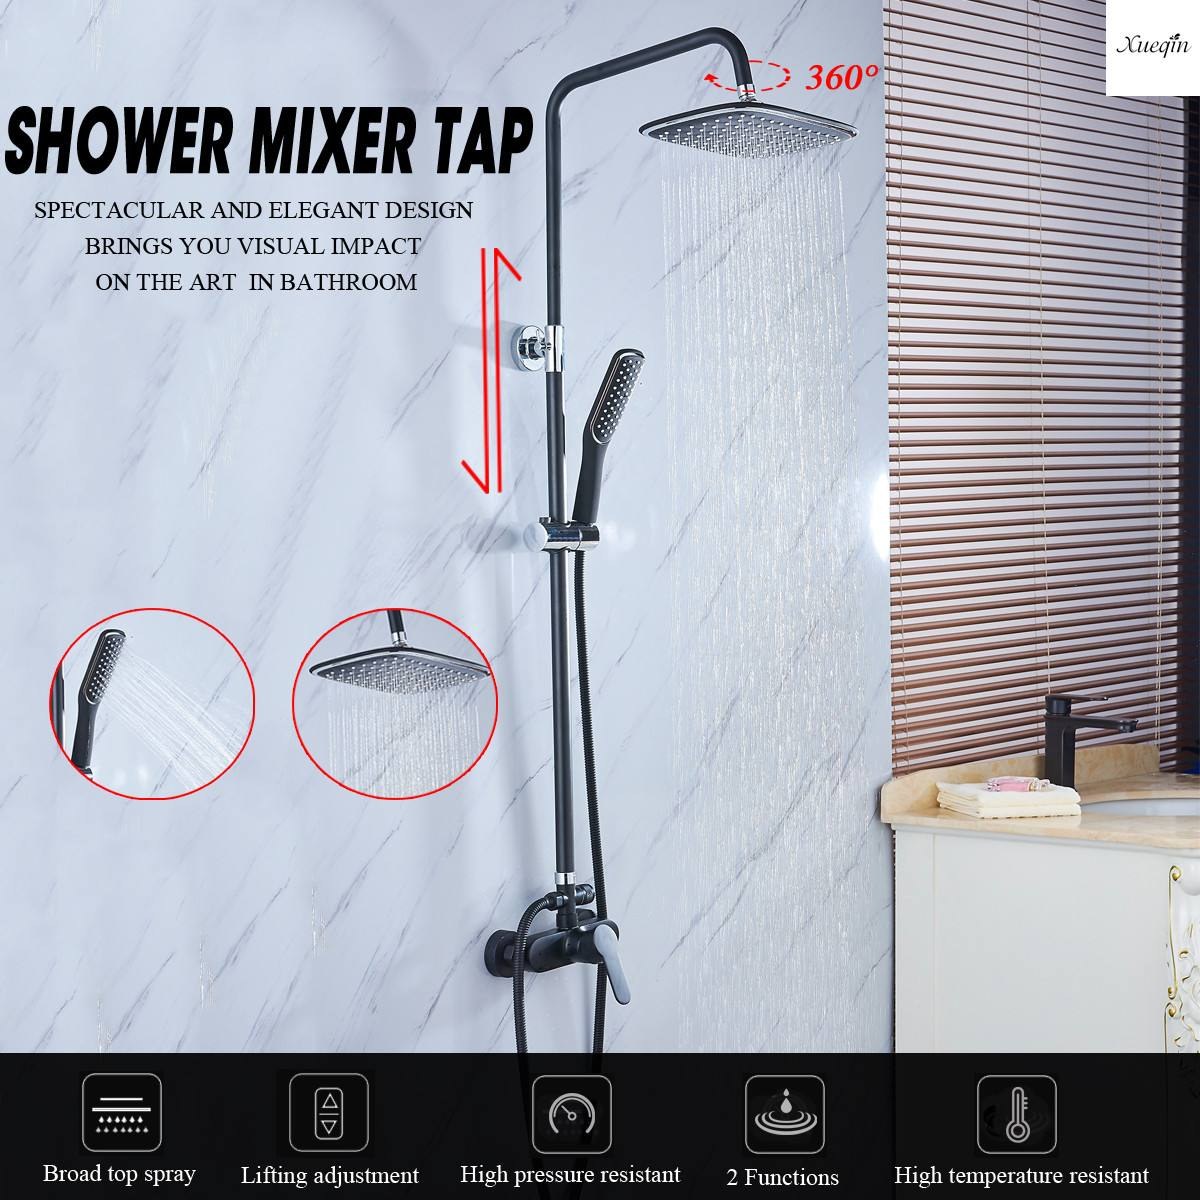 G1/2 Black Rainfall Bathroom Shower Set Wall Mounted Shower Spray Mixer Tap Faucet Mixer Valve Set Single Handle Hot and ColdG1/2 Black Rainfall Bathroom Shower Set Wall Mounted Shower Spray Mixer Tap Faucet Mixer Valve Set Single Handle Hot and Cold